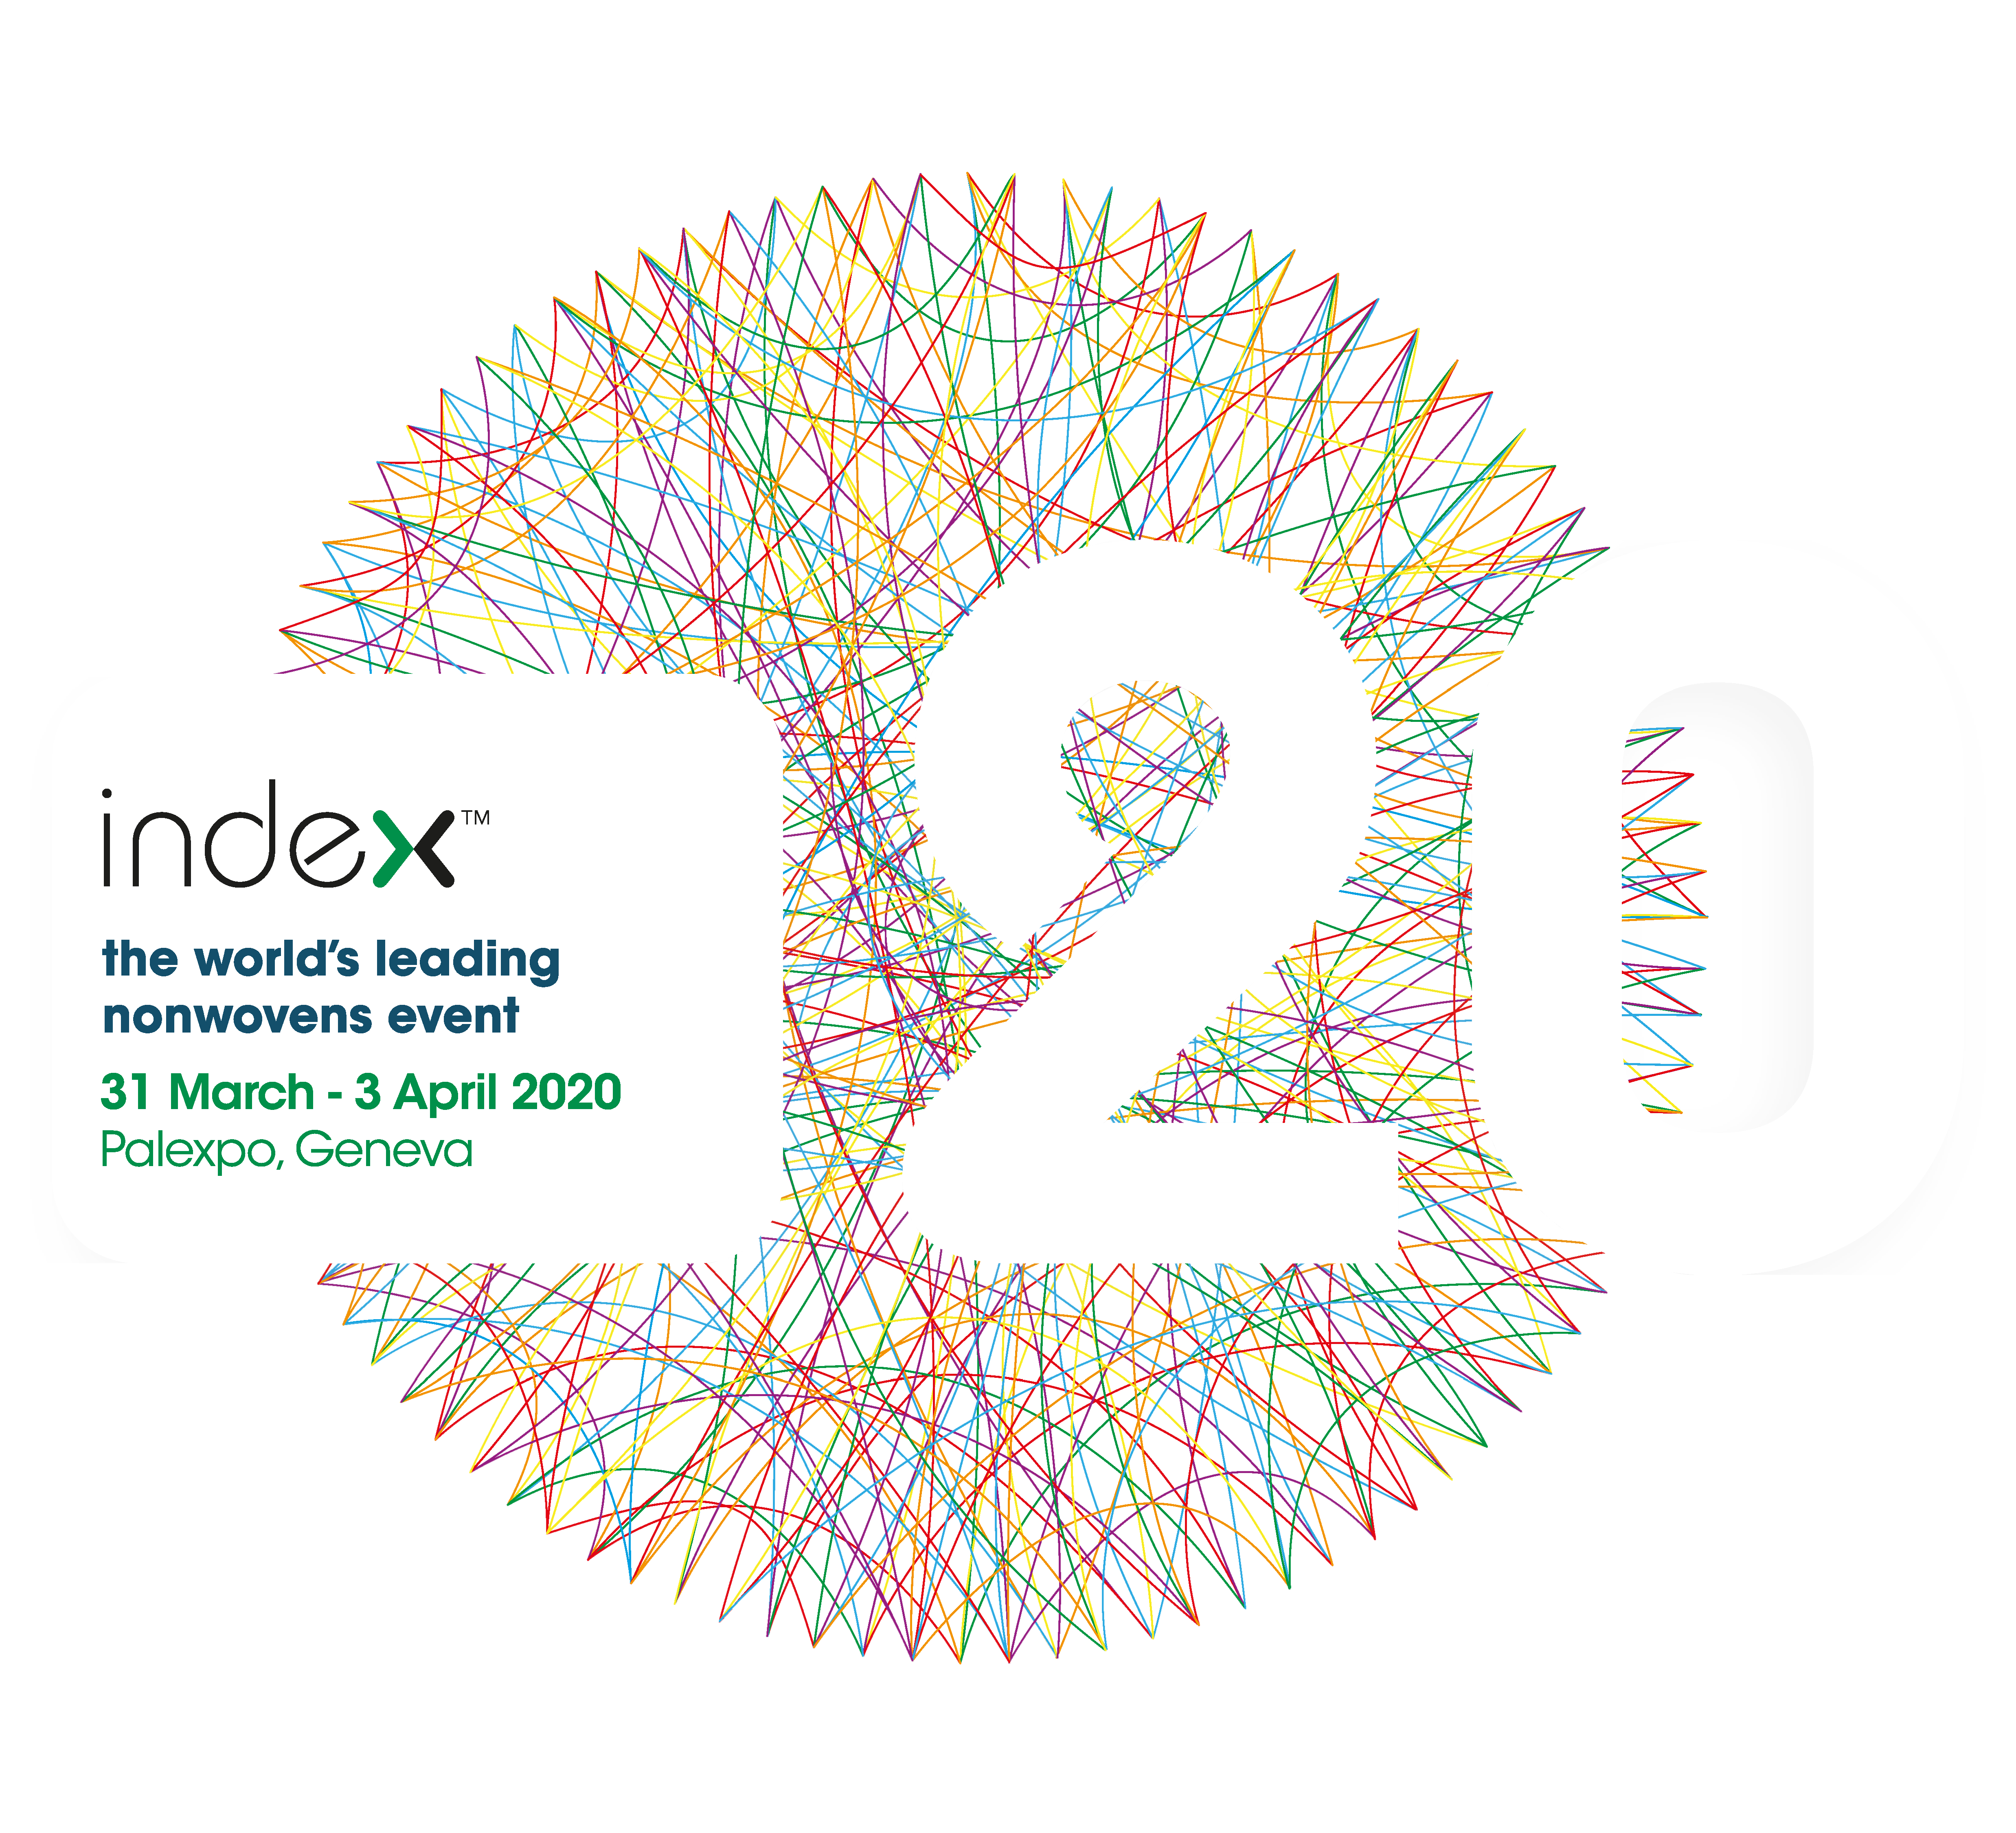 Index 2020: 31-03-2020 Palexpo, Geneve: Stand 2261